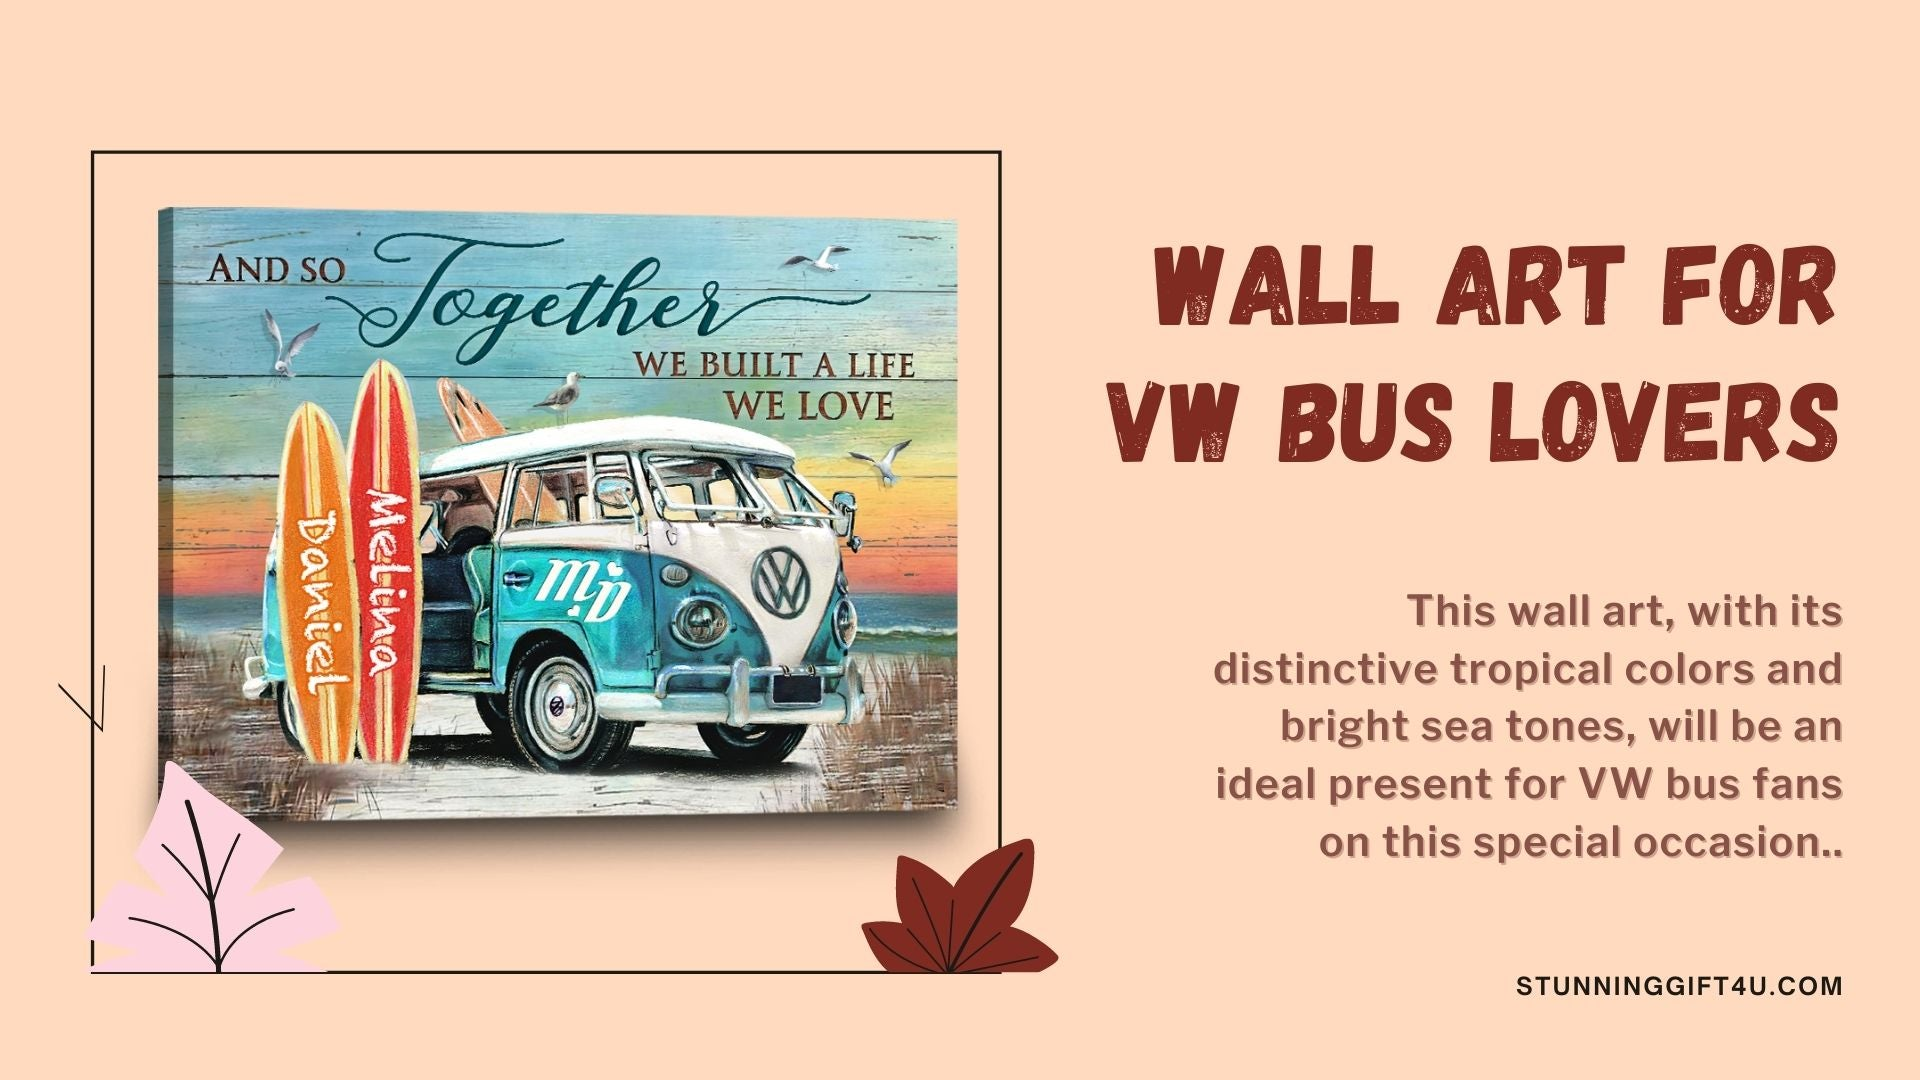 Check out a gift for him wall art for bus lovers from Stunning Gift Store